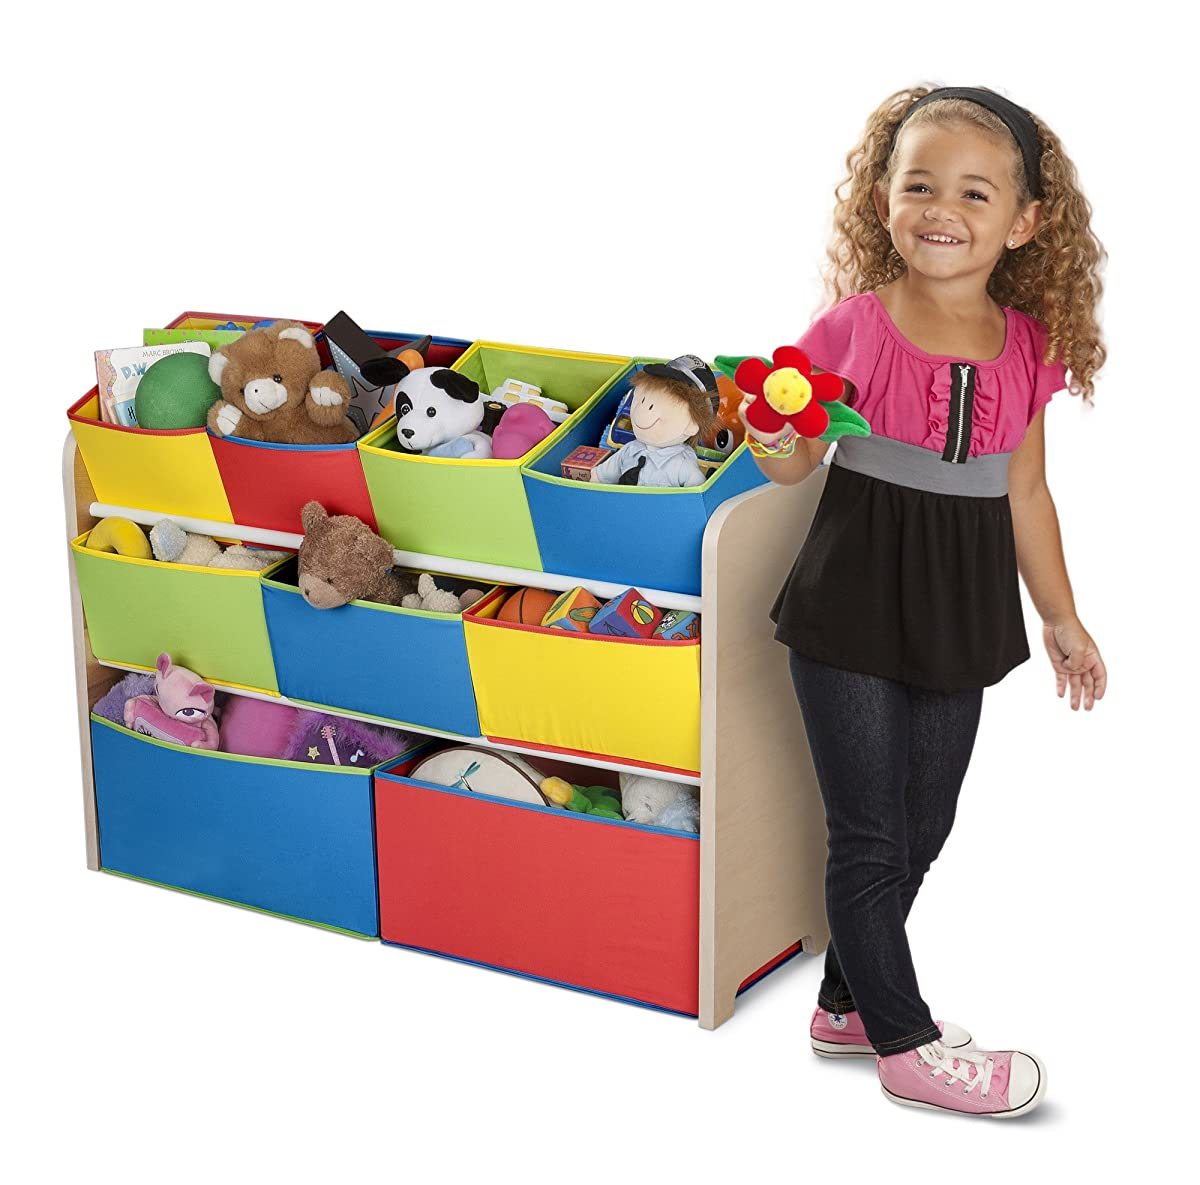 Delta Children Multi-Color Deluxe Toy Organizer with Storage Bins